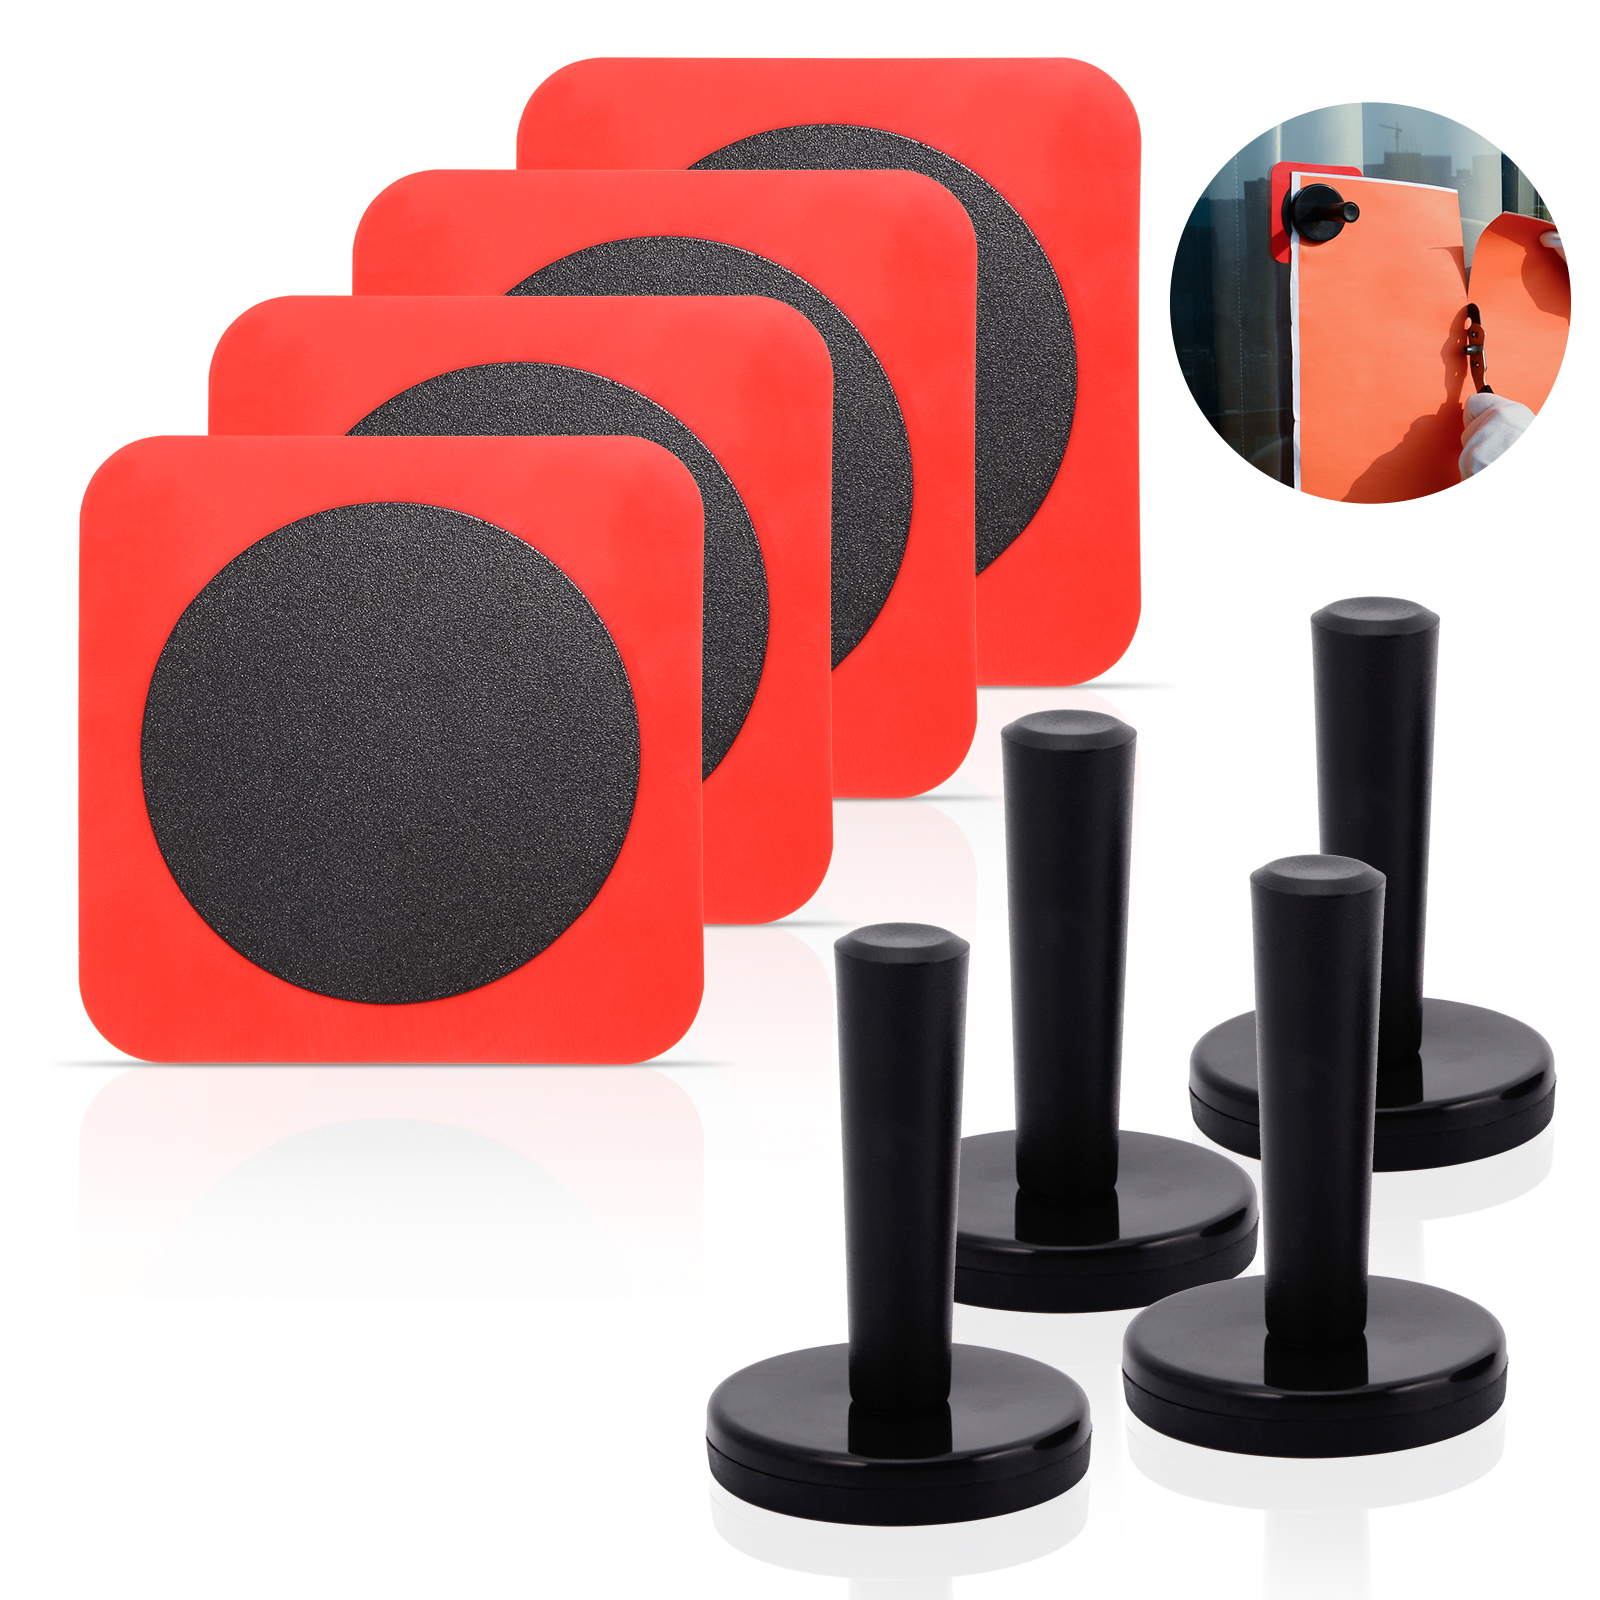 FOSHIO Vinyl Carbon Film Magnet Holder+Adsorption <font><b>Patch</b></font> <font><b>Car</b></font> Wrap Window Tinting Wallpaper Stickers Decals Install Fixing Tools image